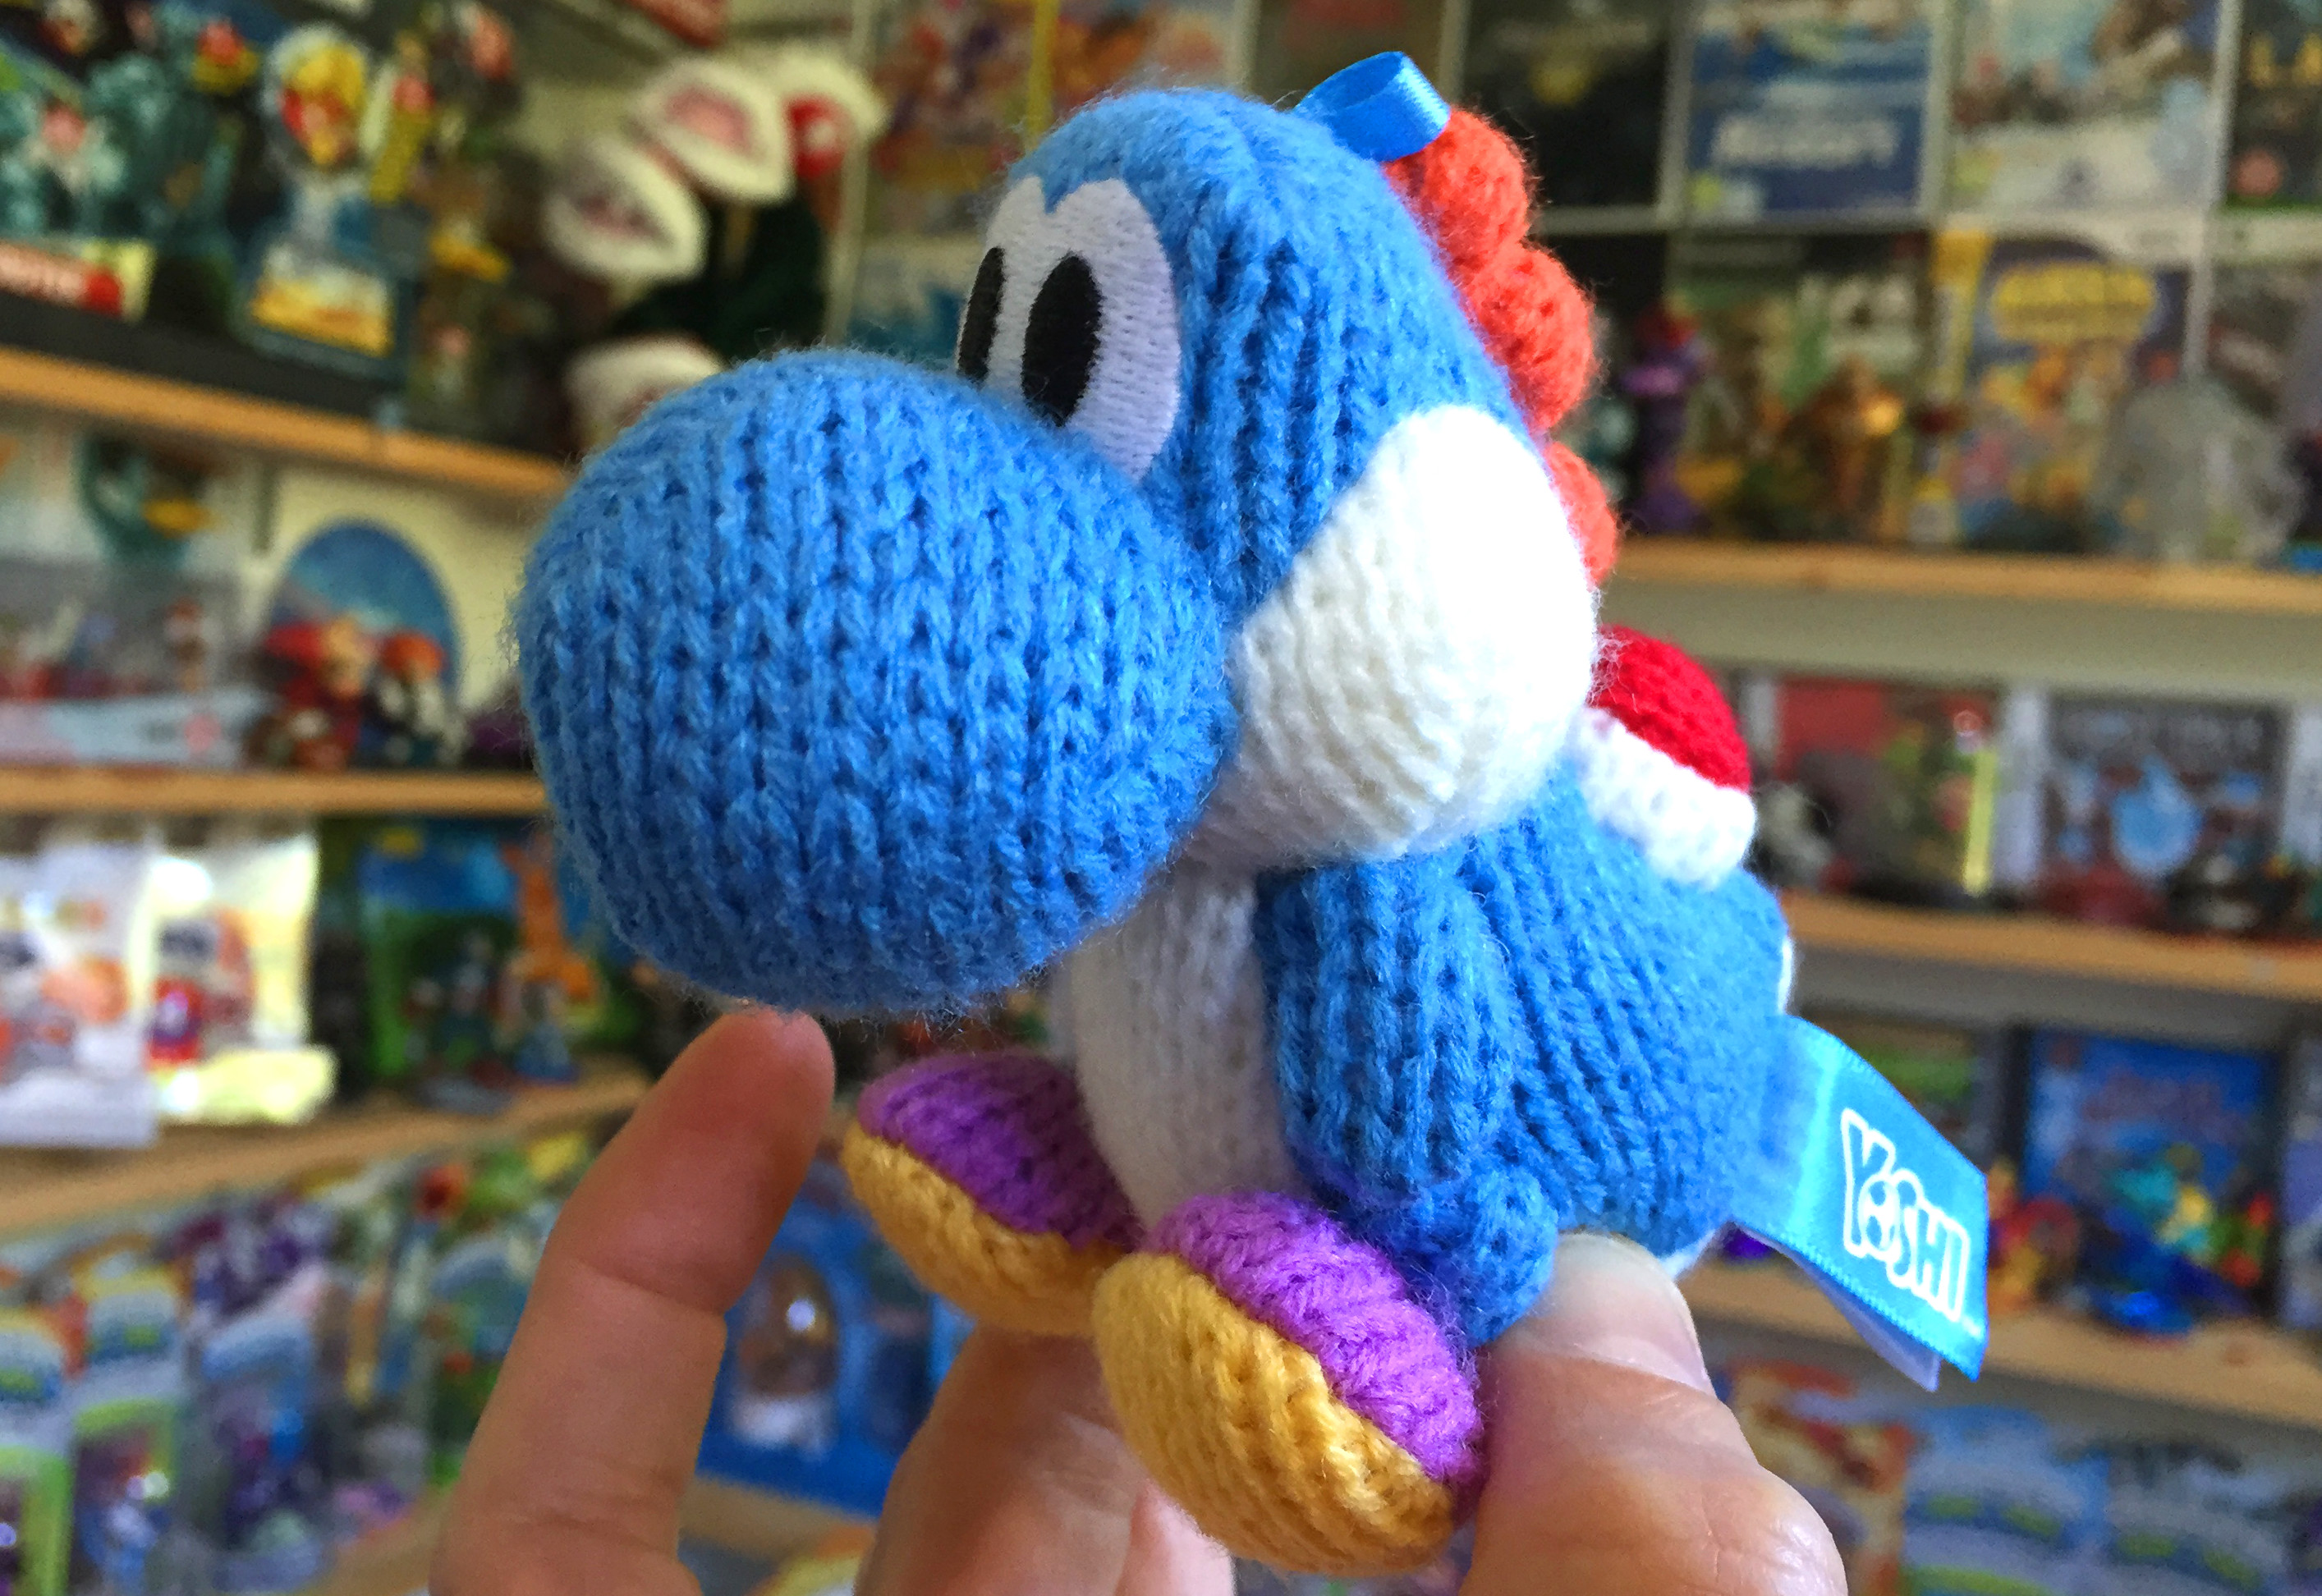 Yoshi amiibo is Woolly and base less